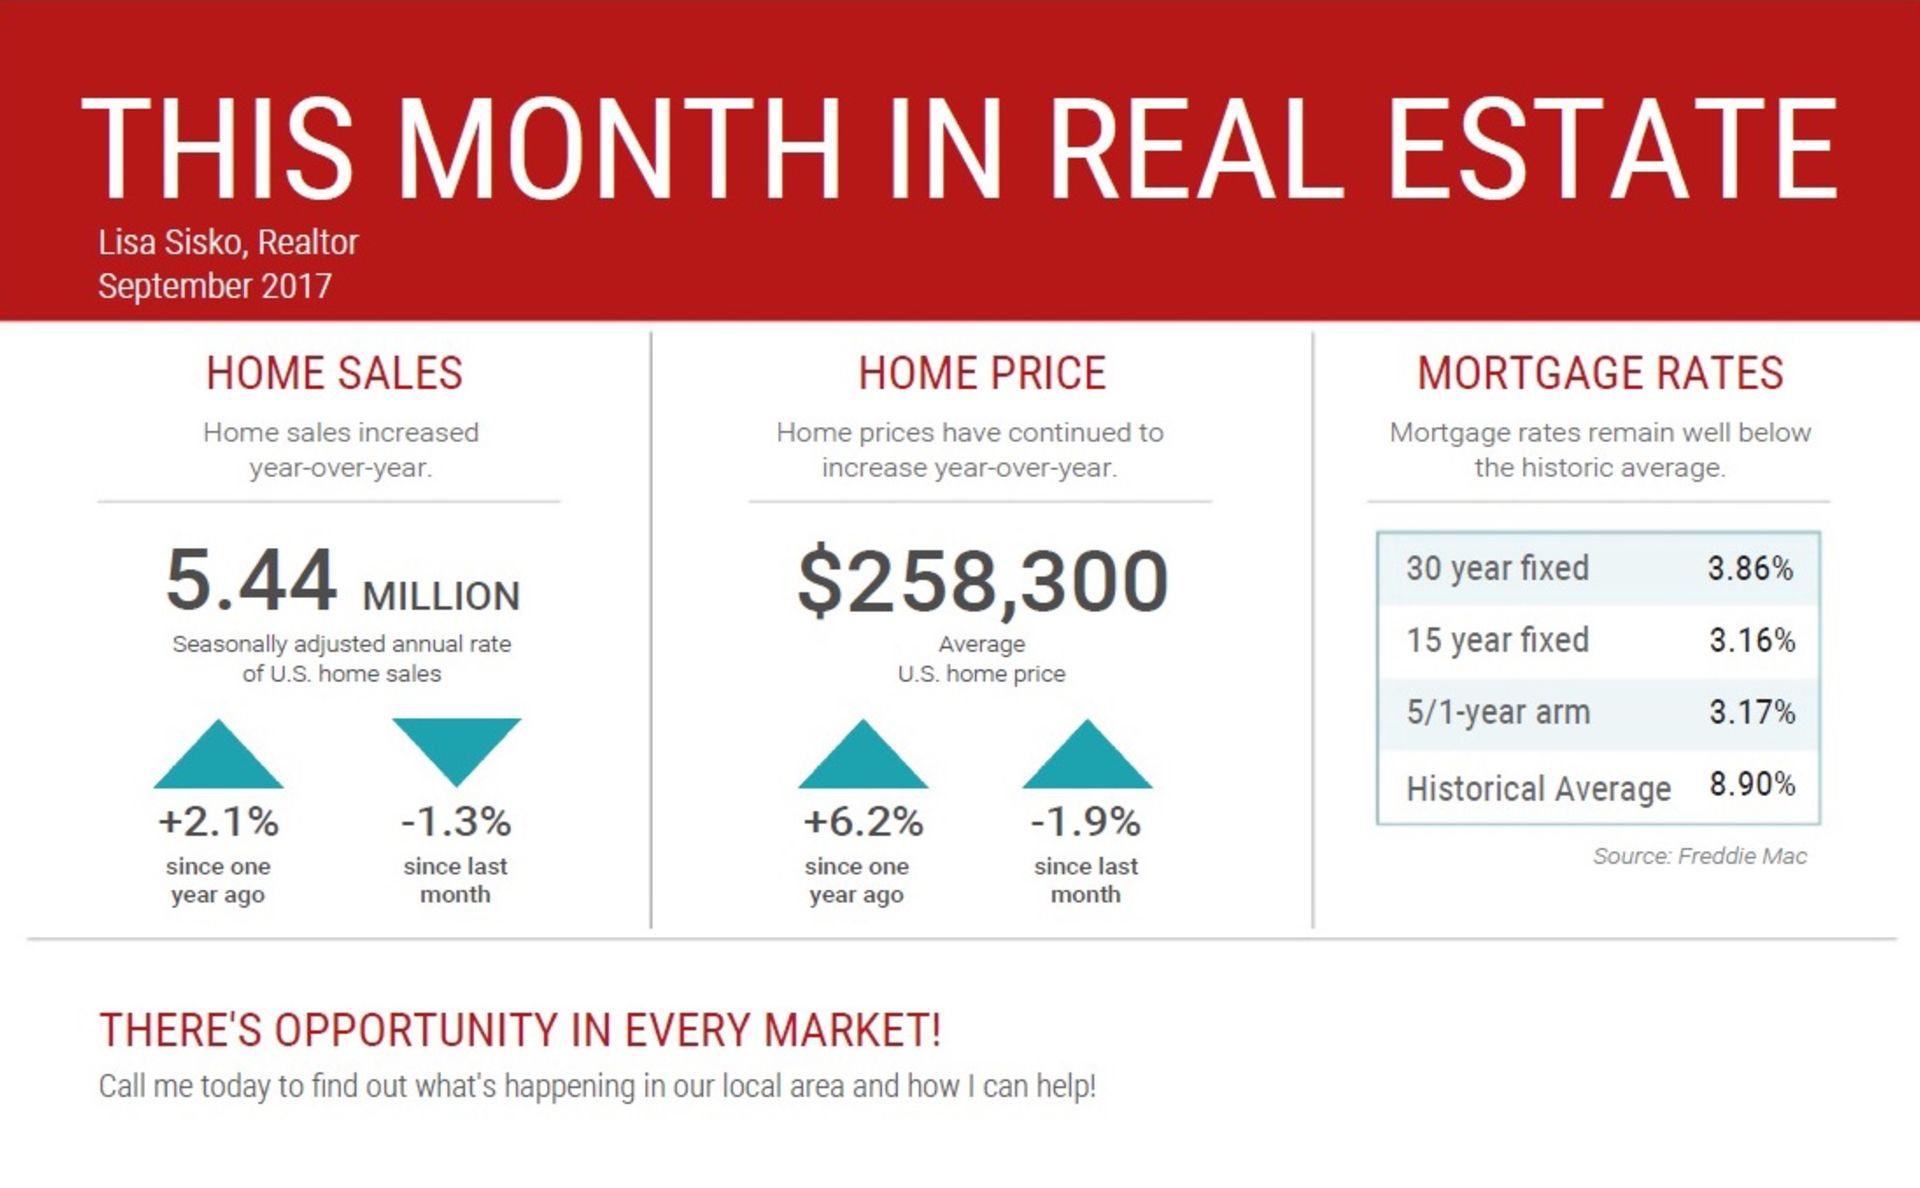 This Month in Real Estate – National Statistics for September 2017